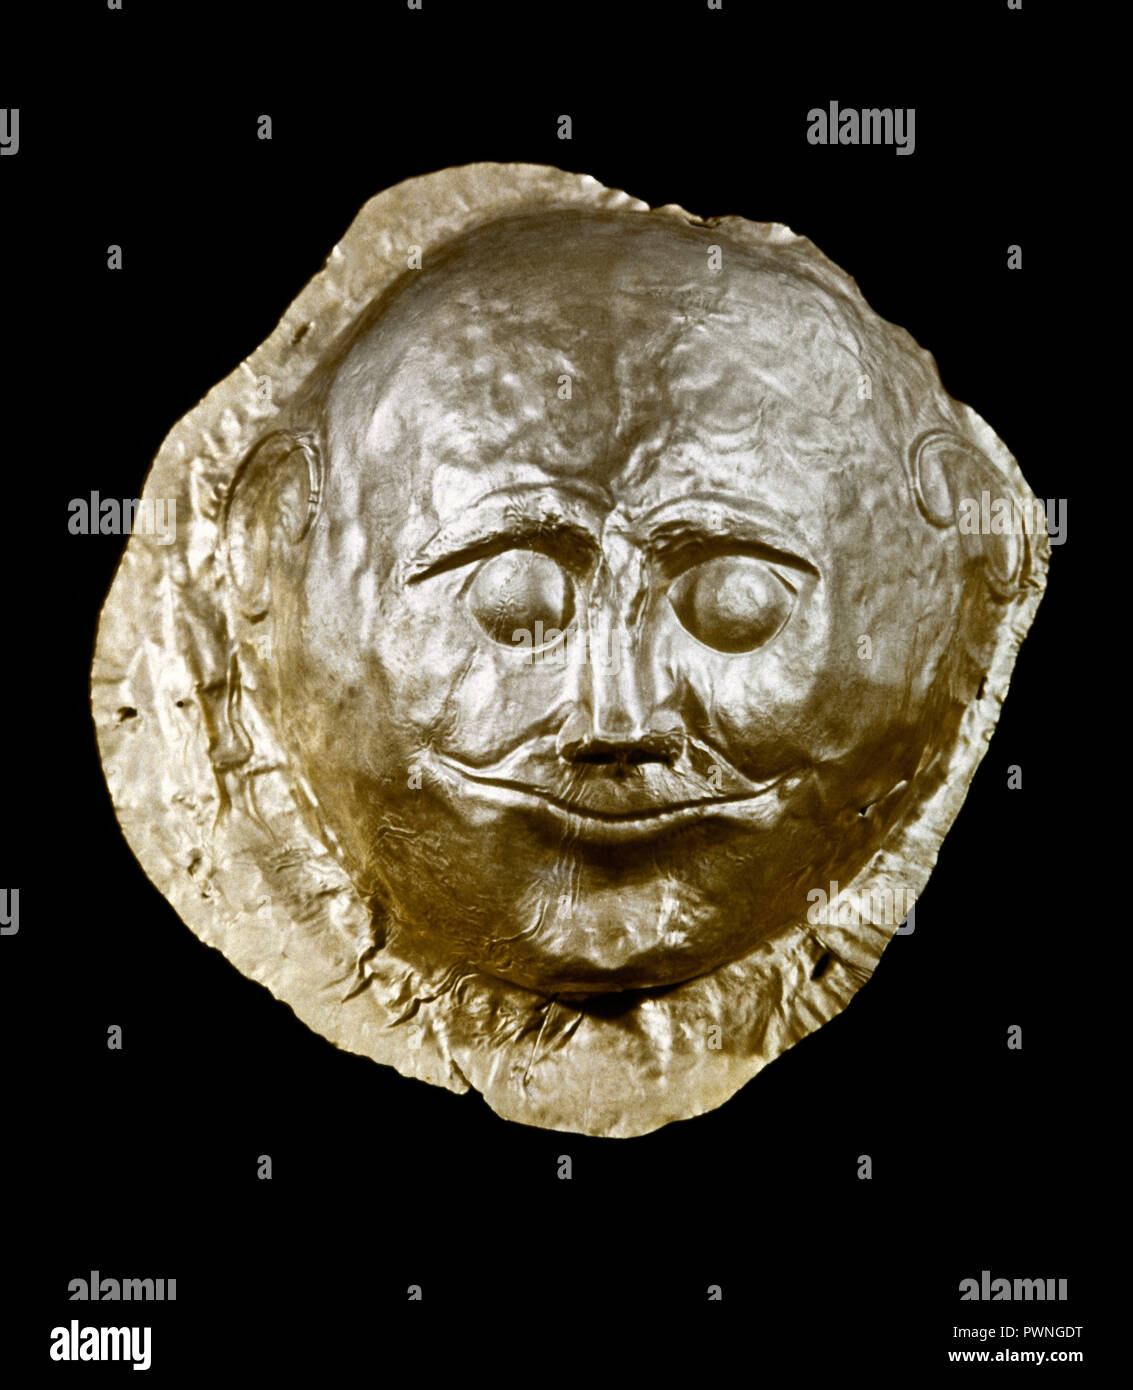 Funerary mask in gold foil by embossing. Tomb IV. Circle A. 16th century BC. Royal Tombs of Mycenae. National Archaeological Museum. Athens, Greece. - Stock Image